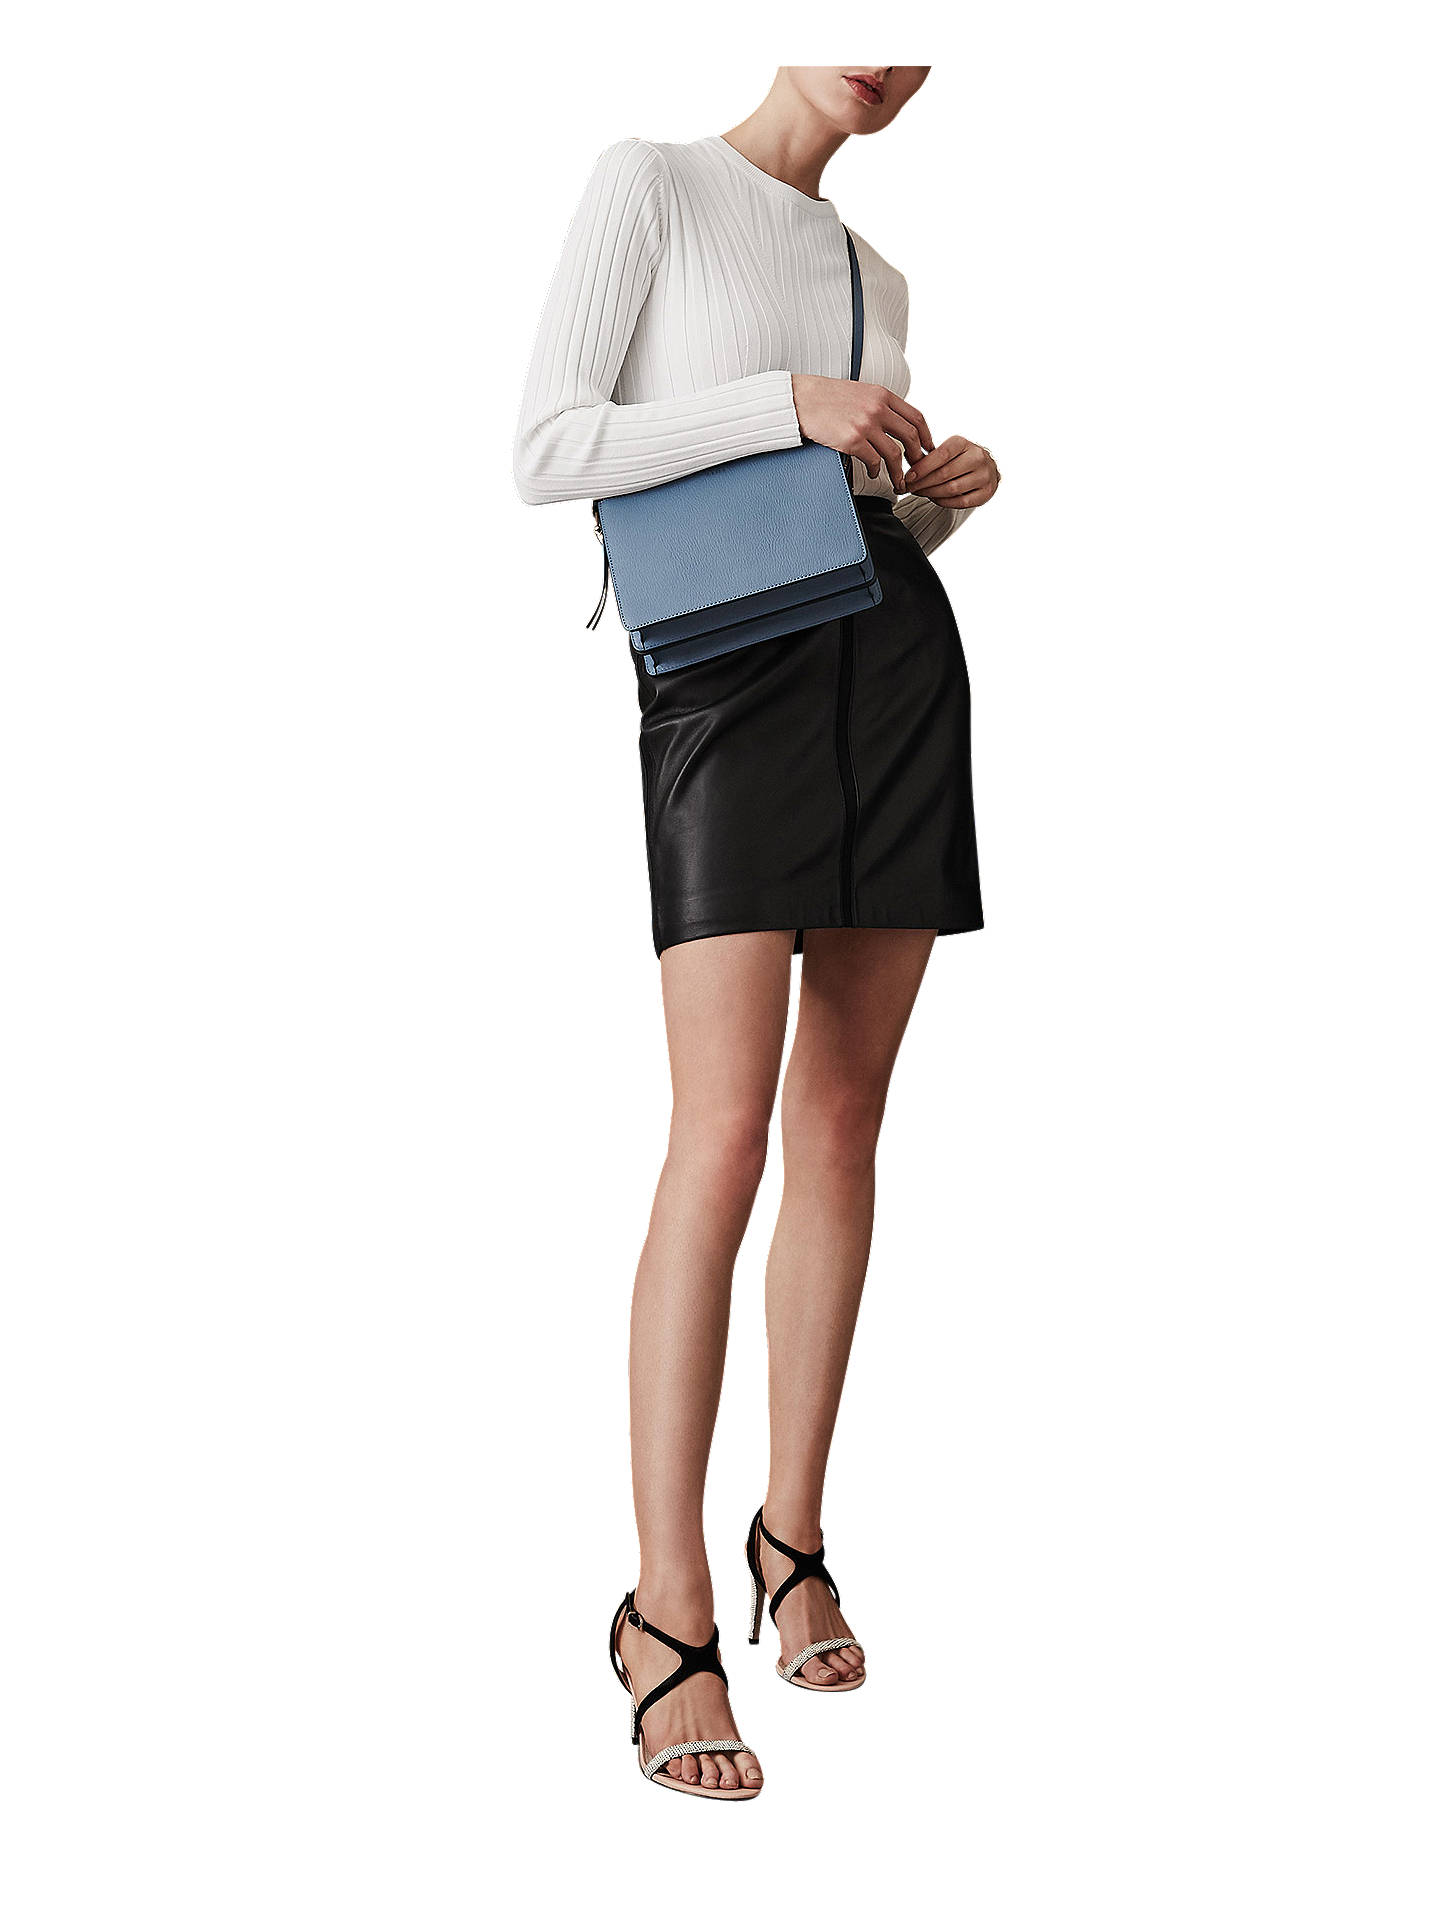 cdc5939f84c8d9 ... Buy Reiss Maisie Leather Pencil Skirt